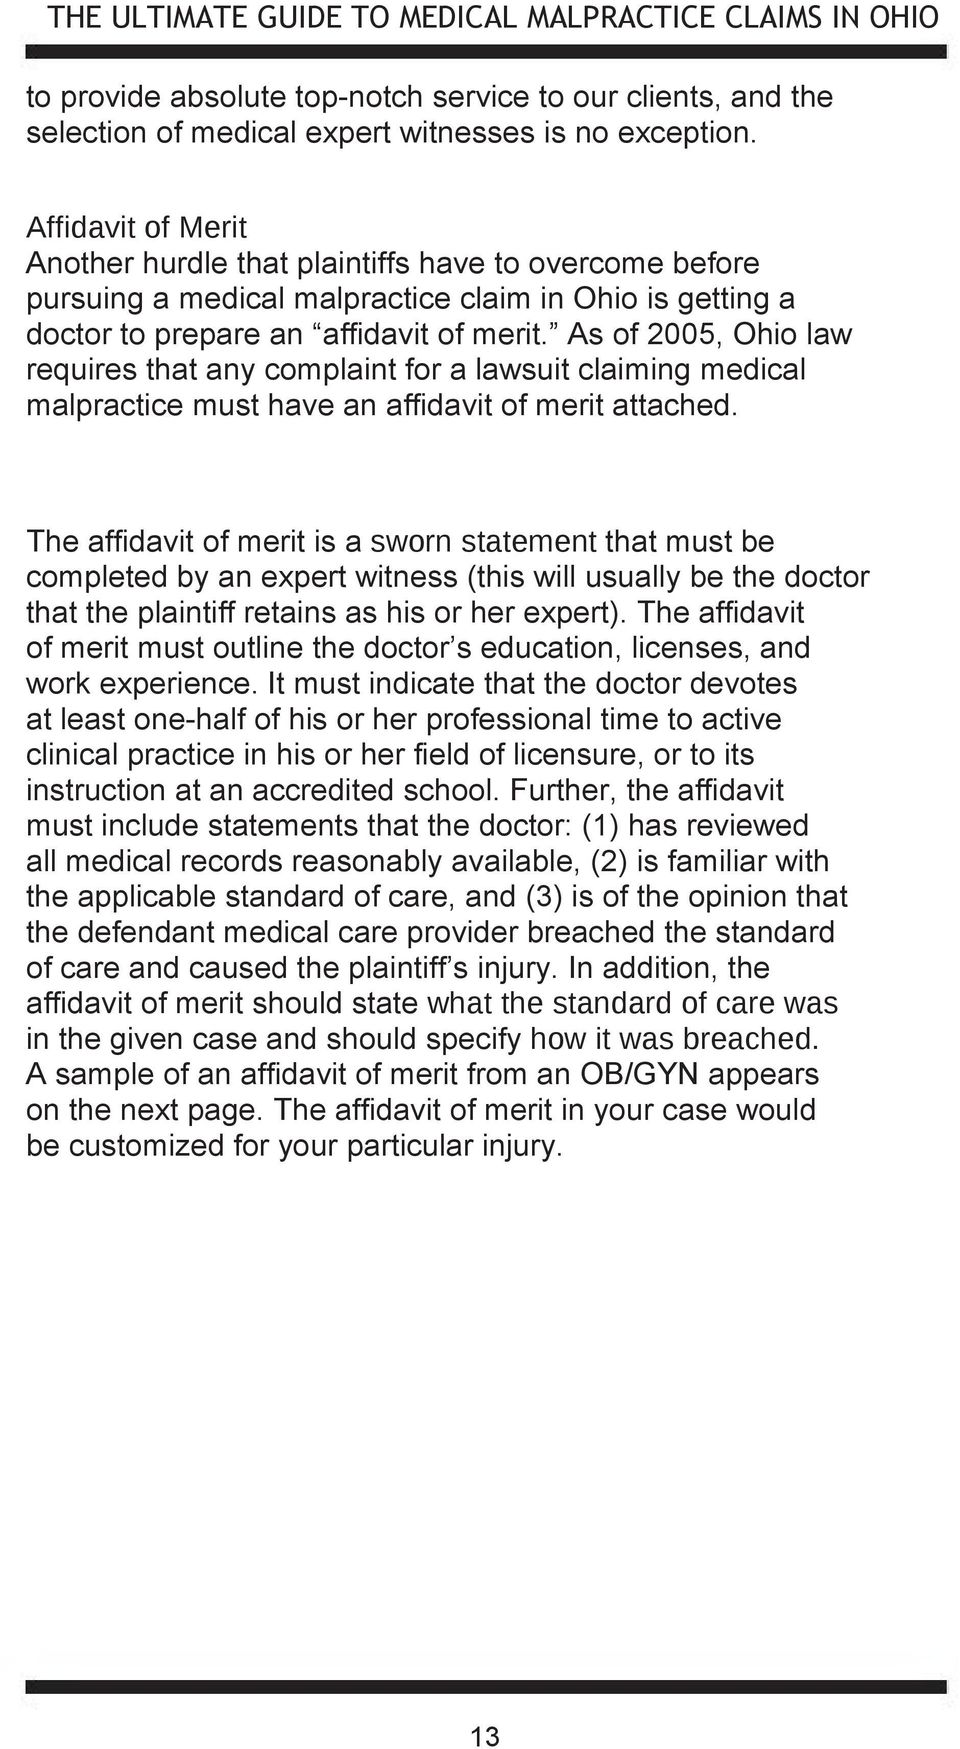 As of 2005, Ohio law requires that any complaint for a lawsuit claiming medical malpractice must have an affidavit of merit attached.